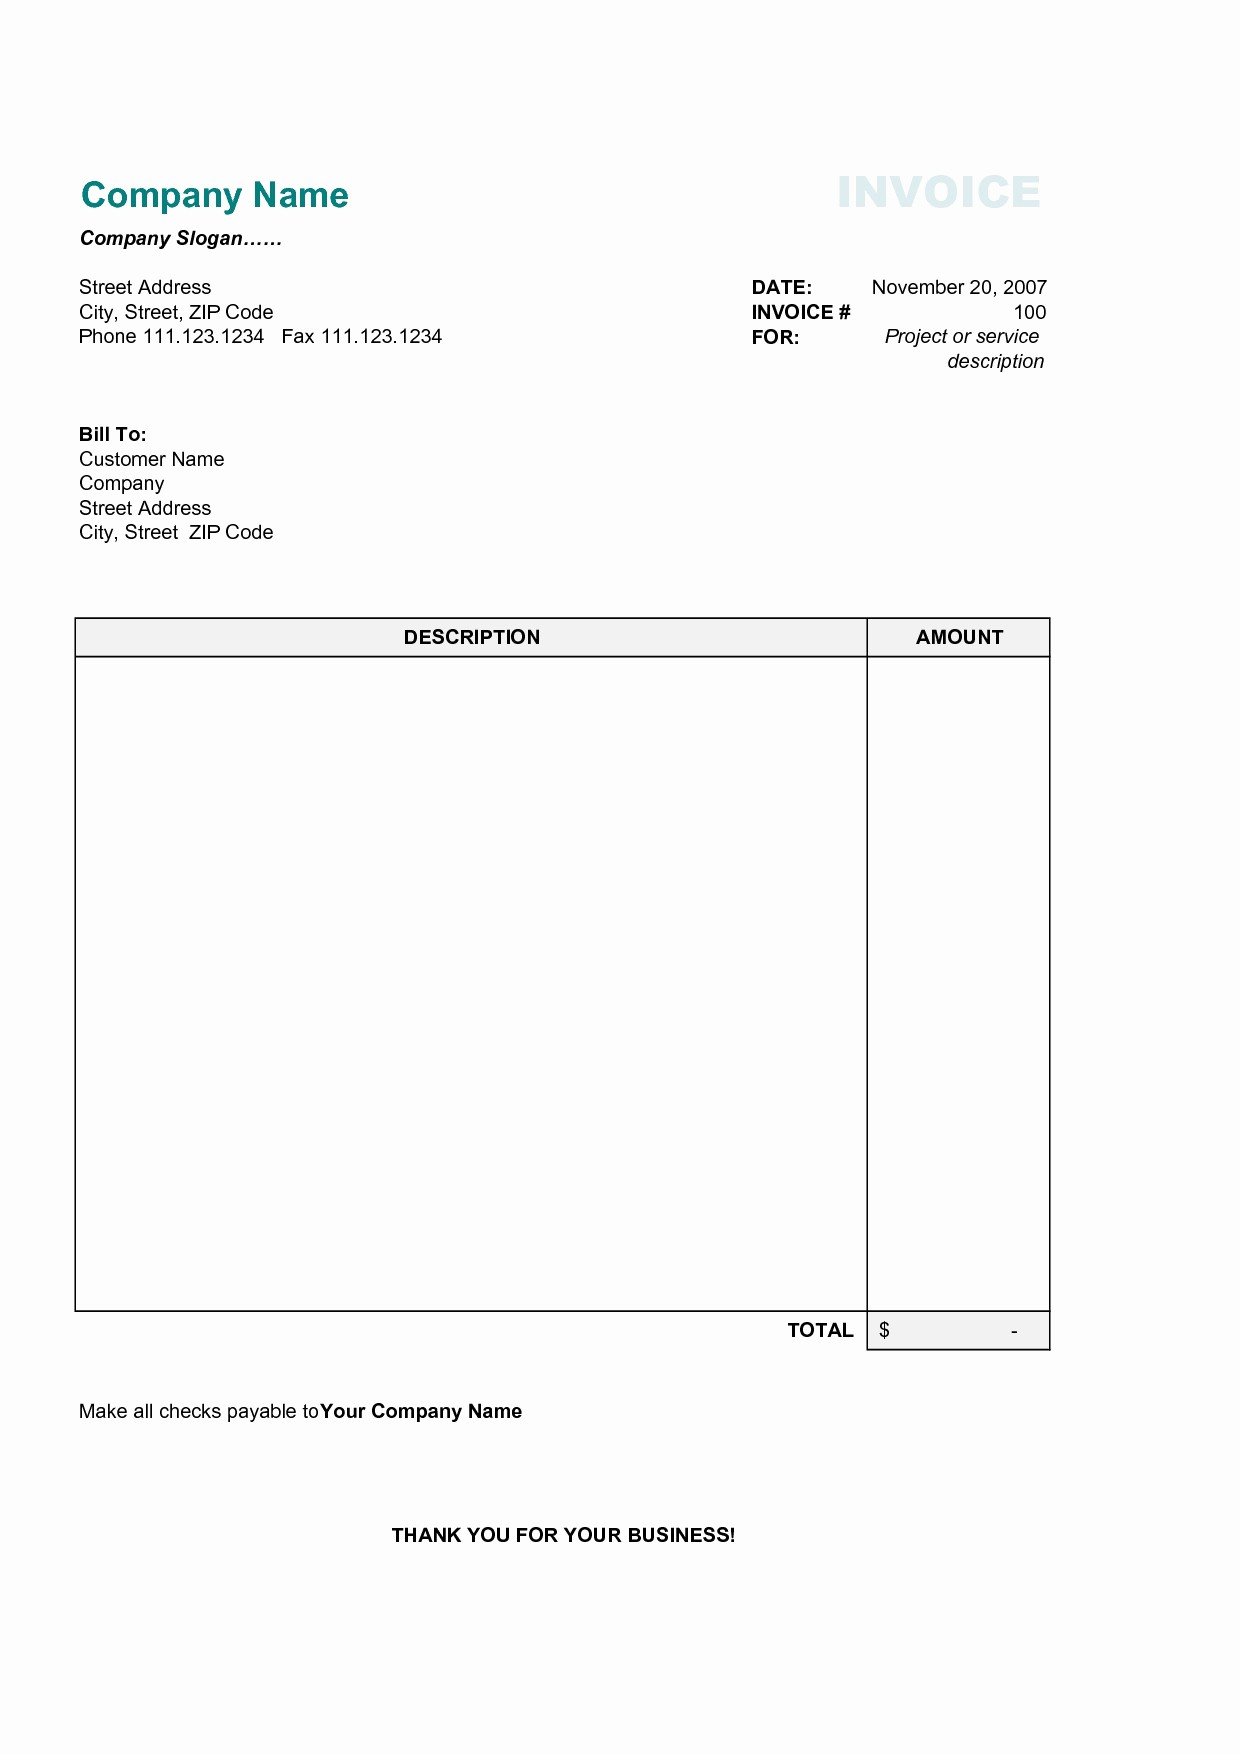 Invoice Template Excel Download Free Luxury Simple Invoice Template